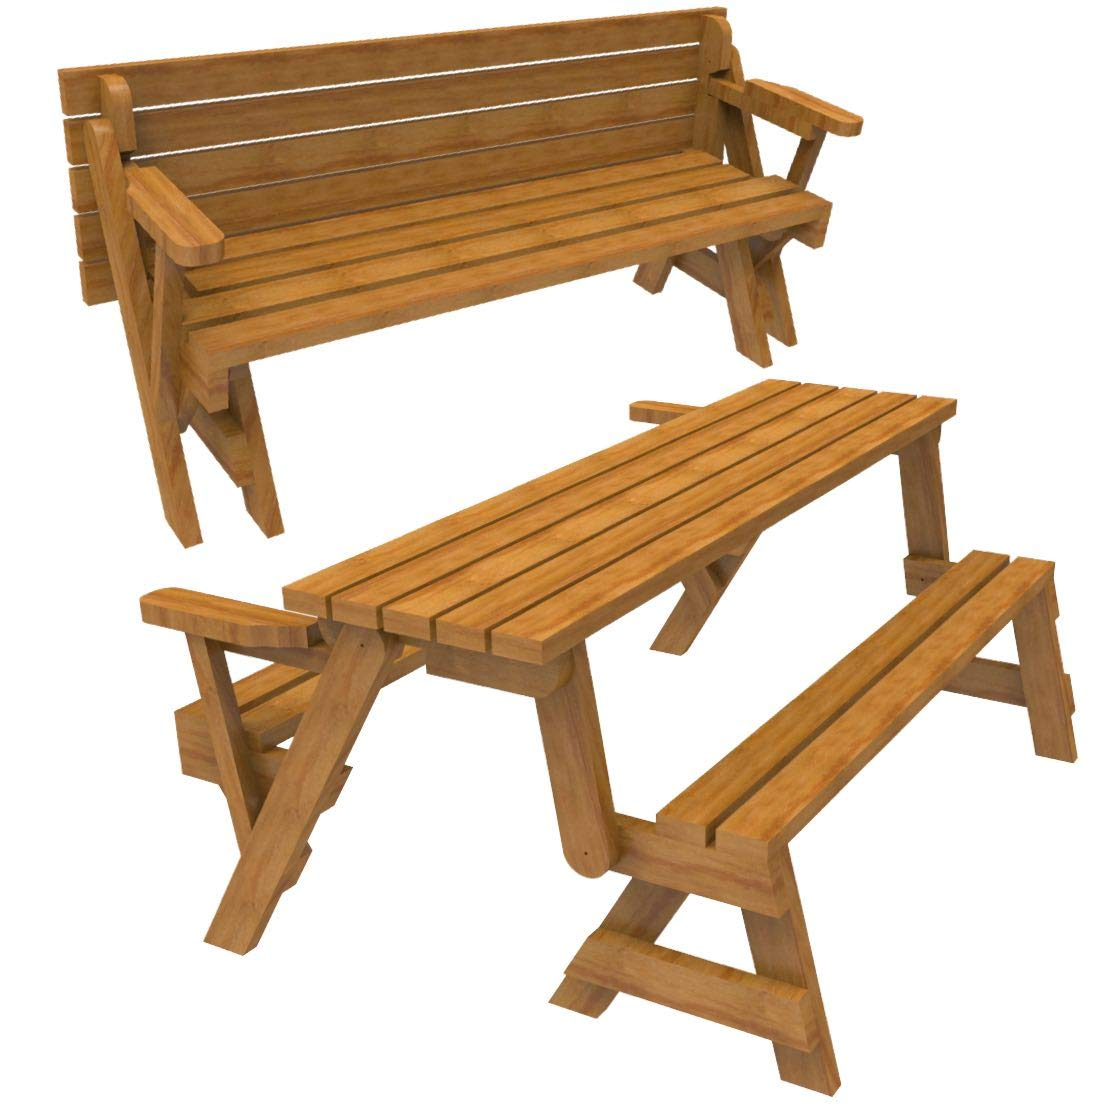 Enjoyable Woodworkersworkshop Woodworking Plan To Build A Convertible Folding Bench Picnic Table Not A Rta Kit Dailytribune Chair Design For Home Dailytribuneorg